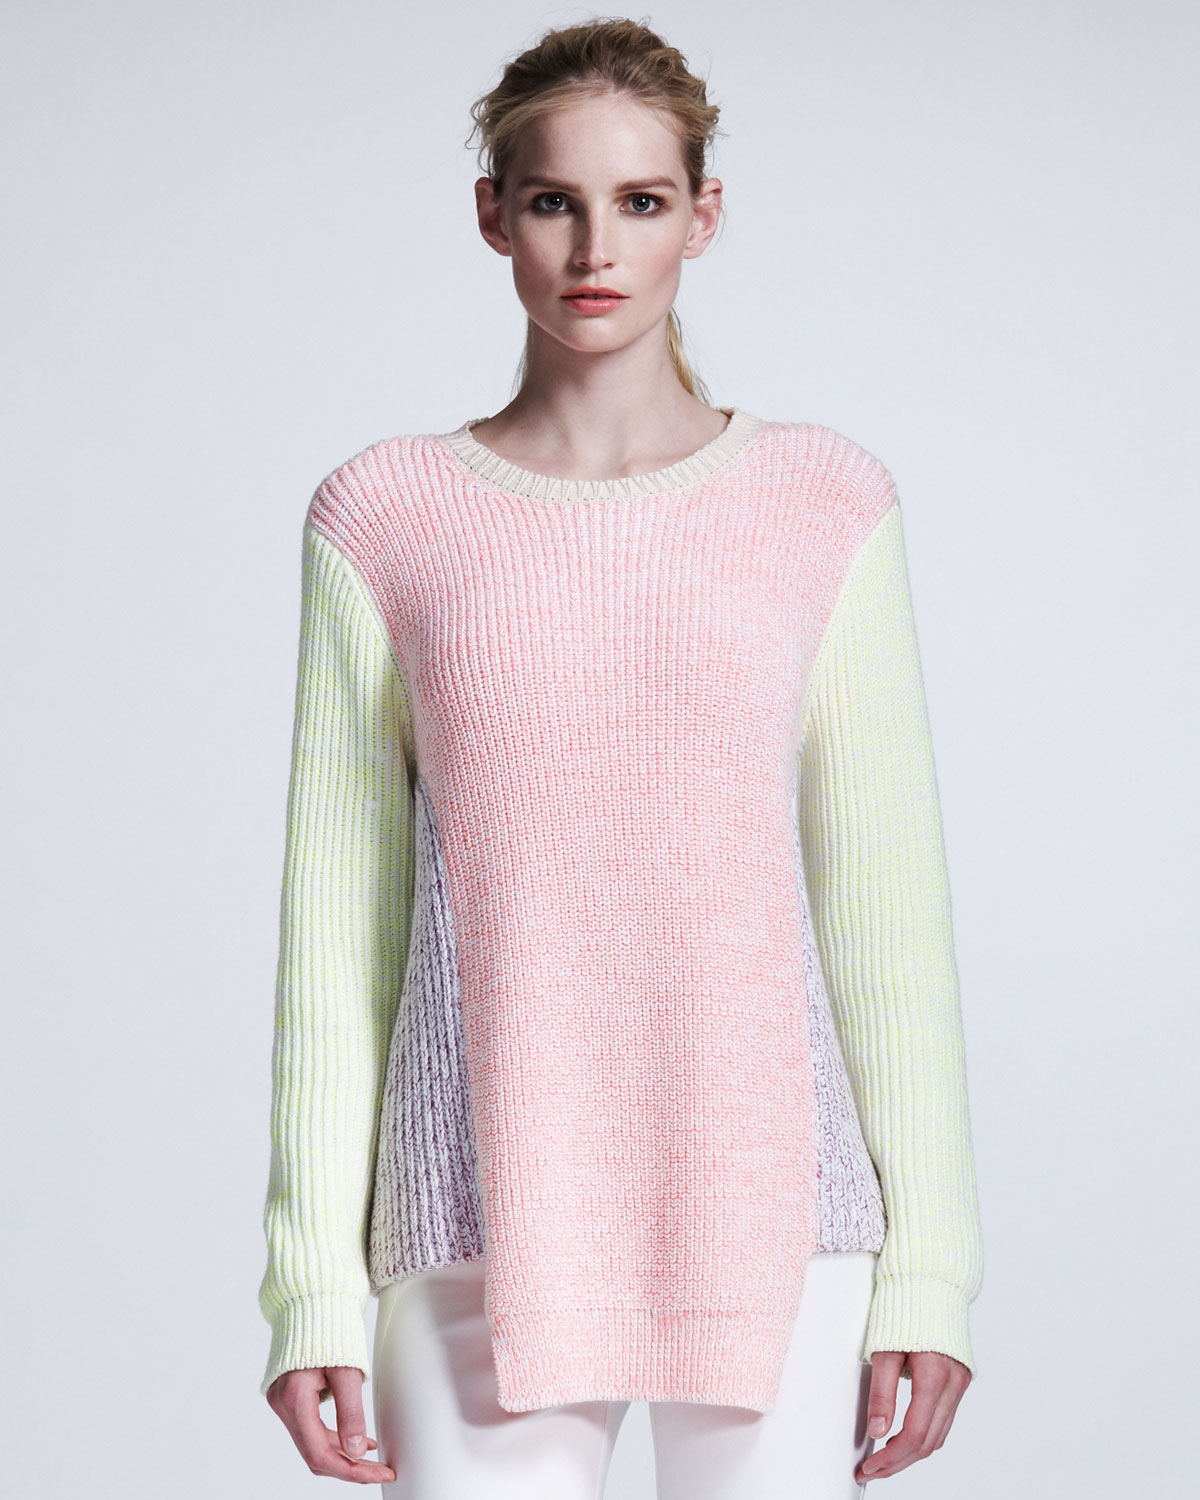 7d43caac6 Lyst - Stella McCartney Pastel Colorblock Knit Pullover in Pink